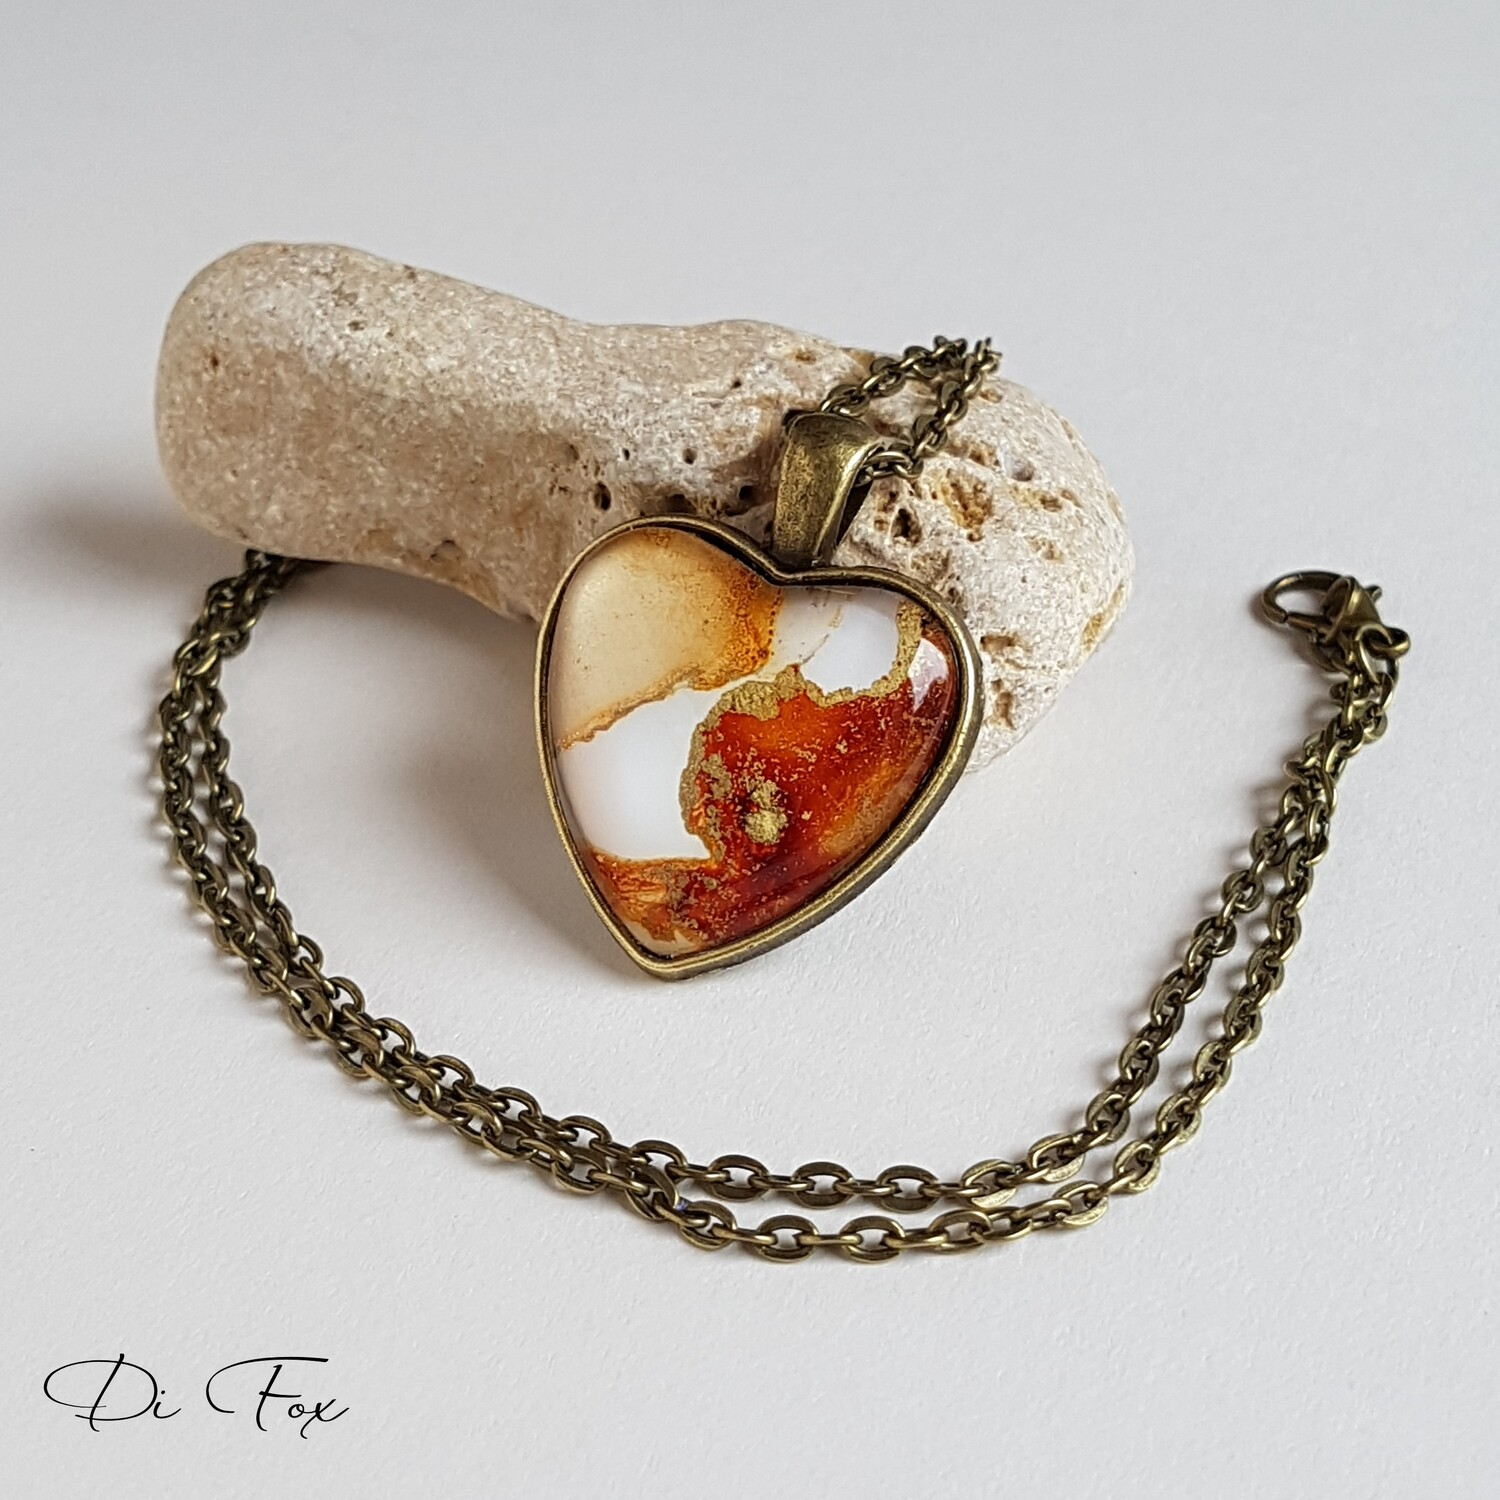 Caramel, Toffee, White and Gold heart shape Bronze pendant and chain.